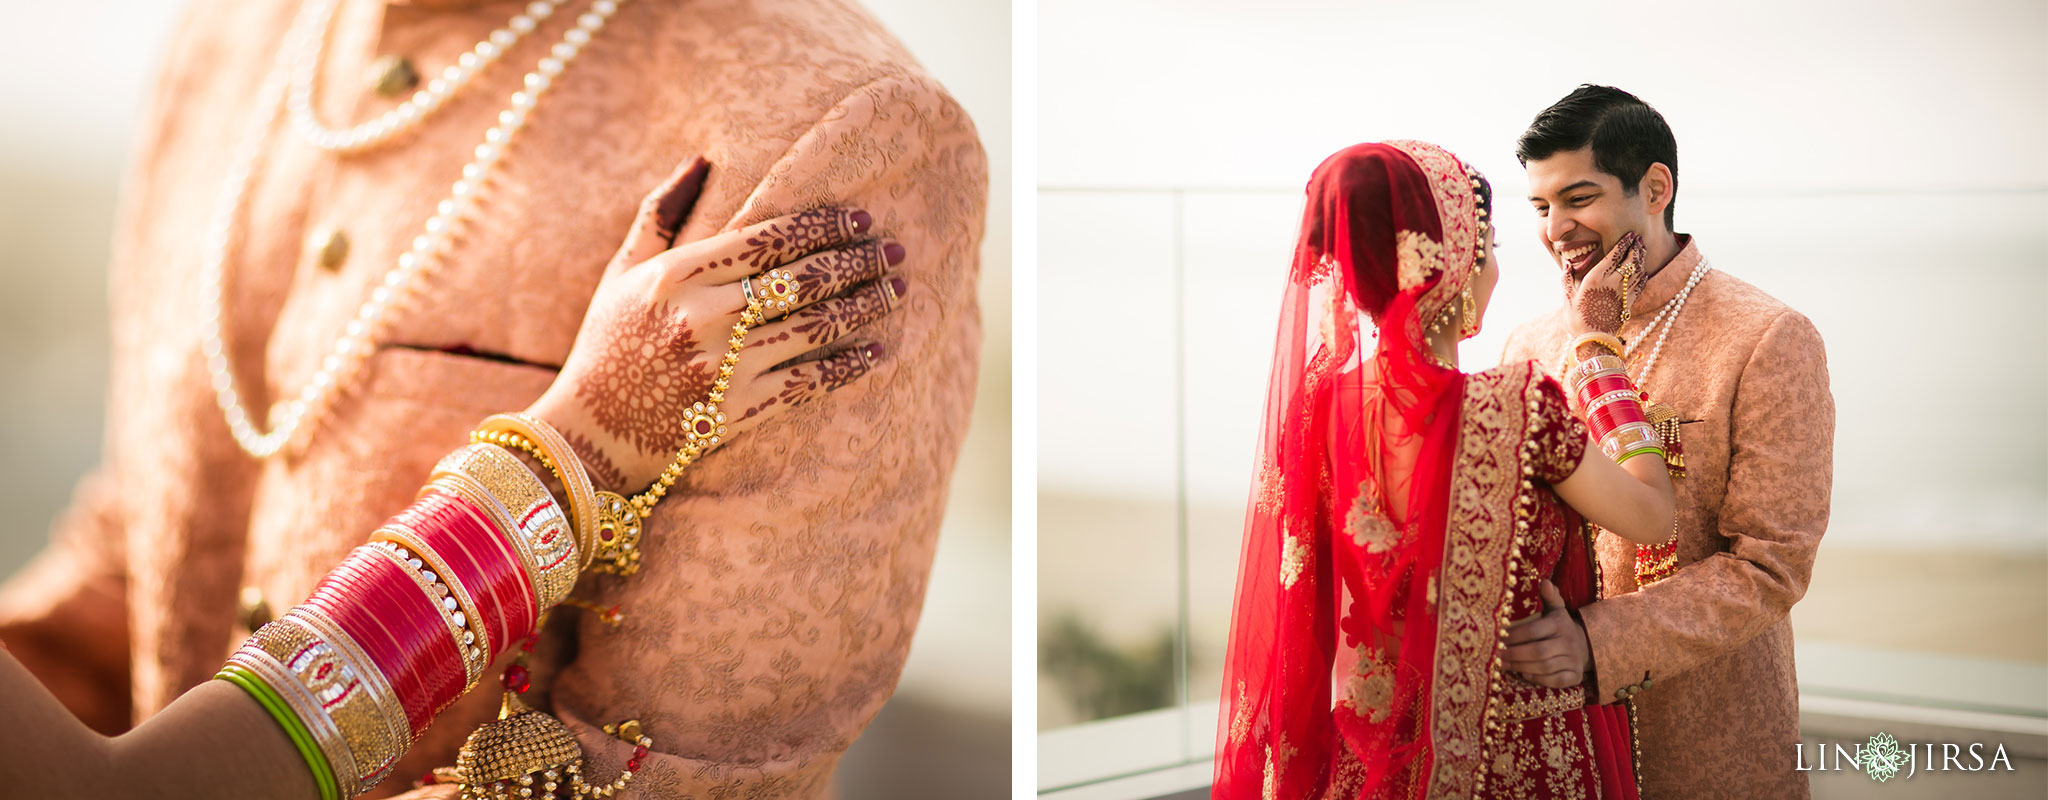 12 hilton waterfront huntington beach indian first look wedding photography